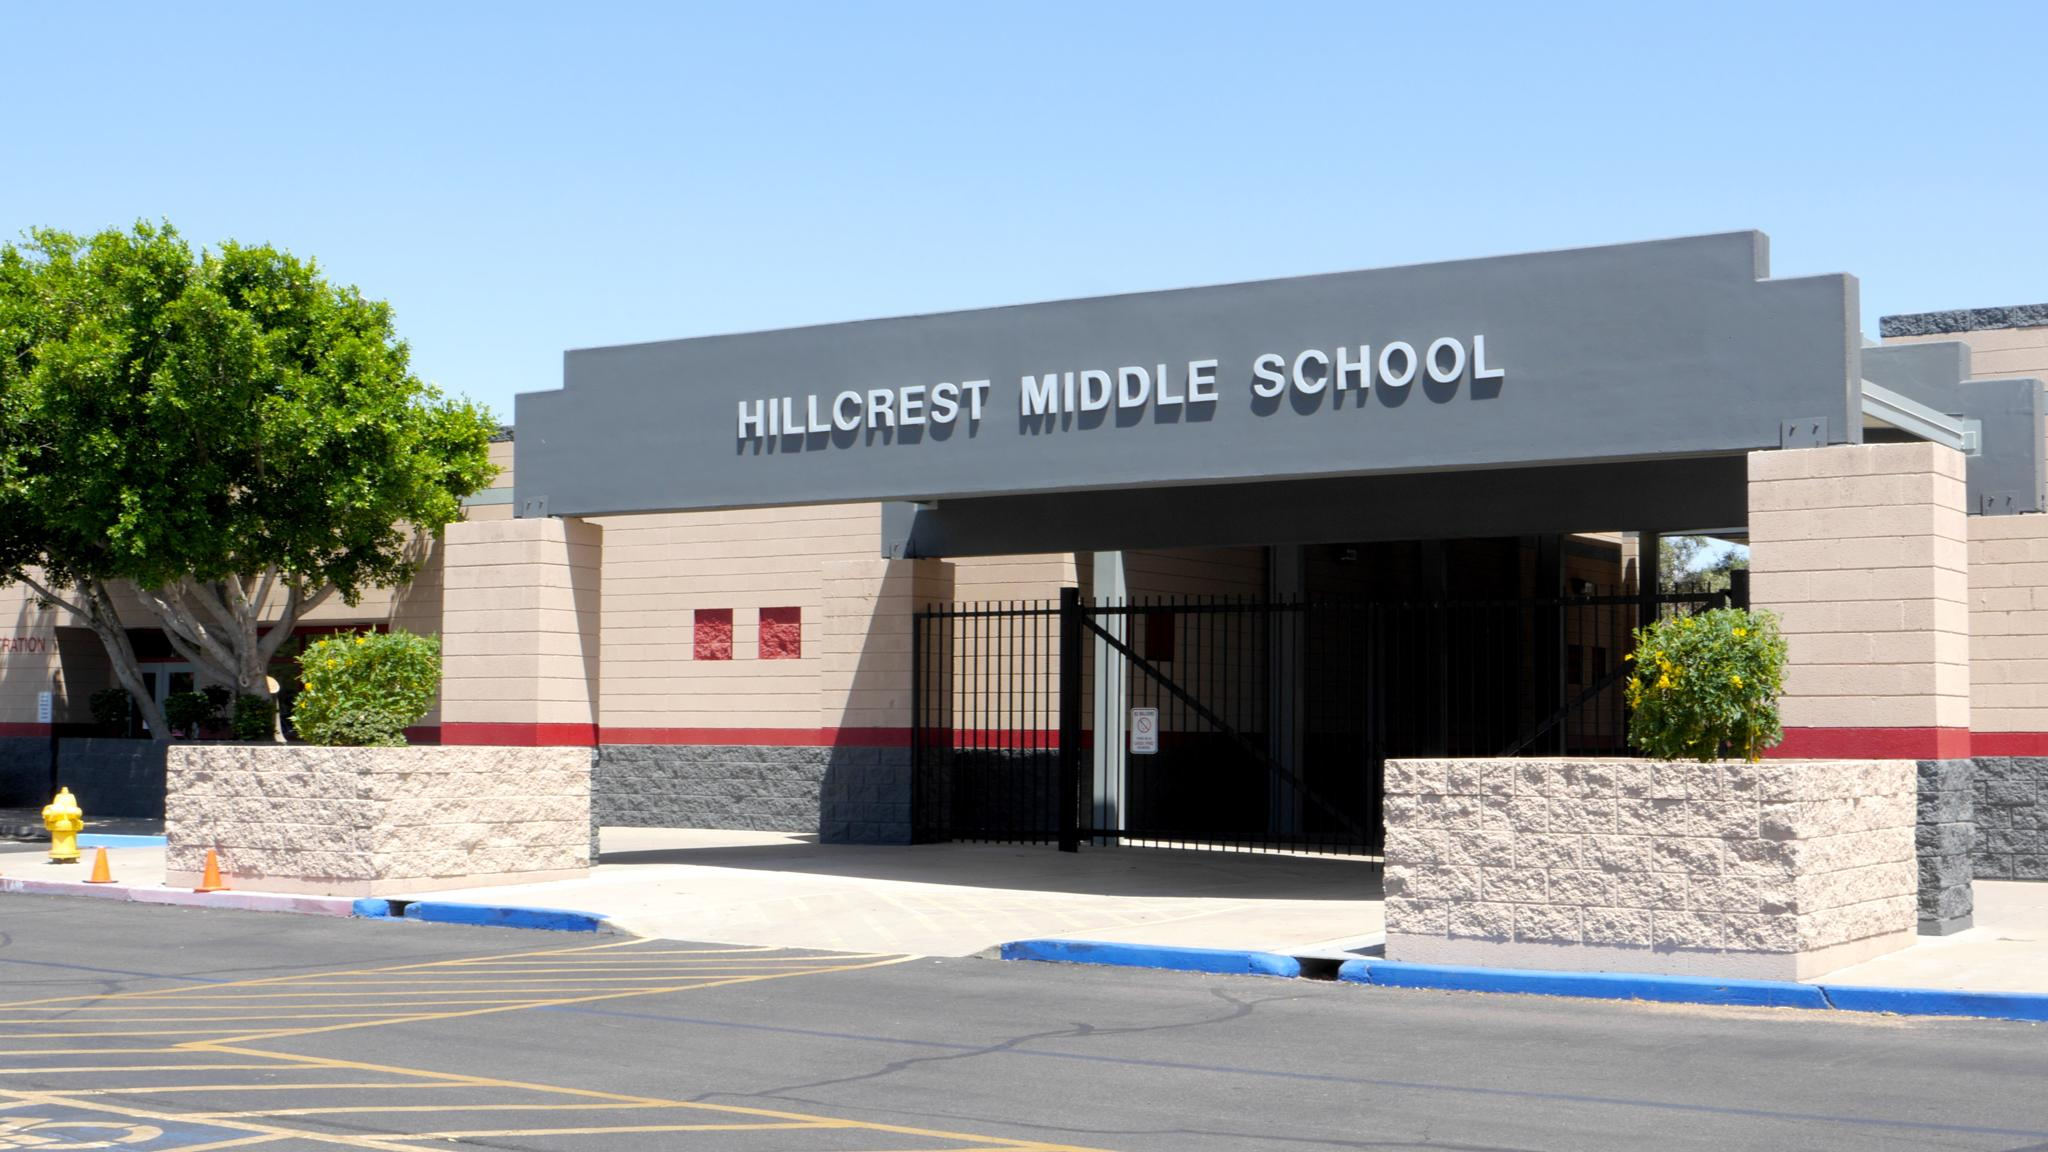 Hillcrest Middle School